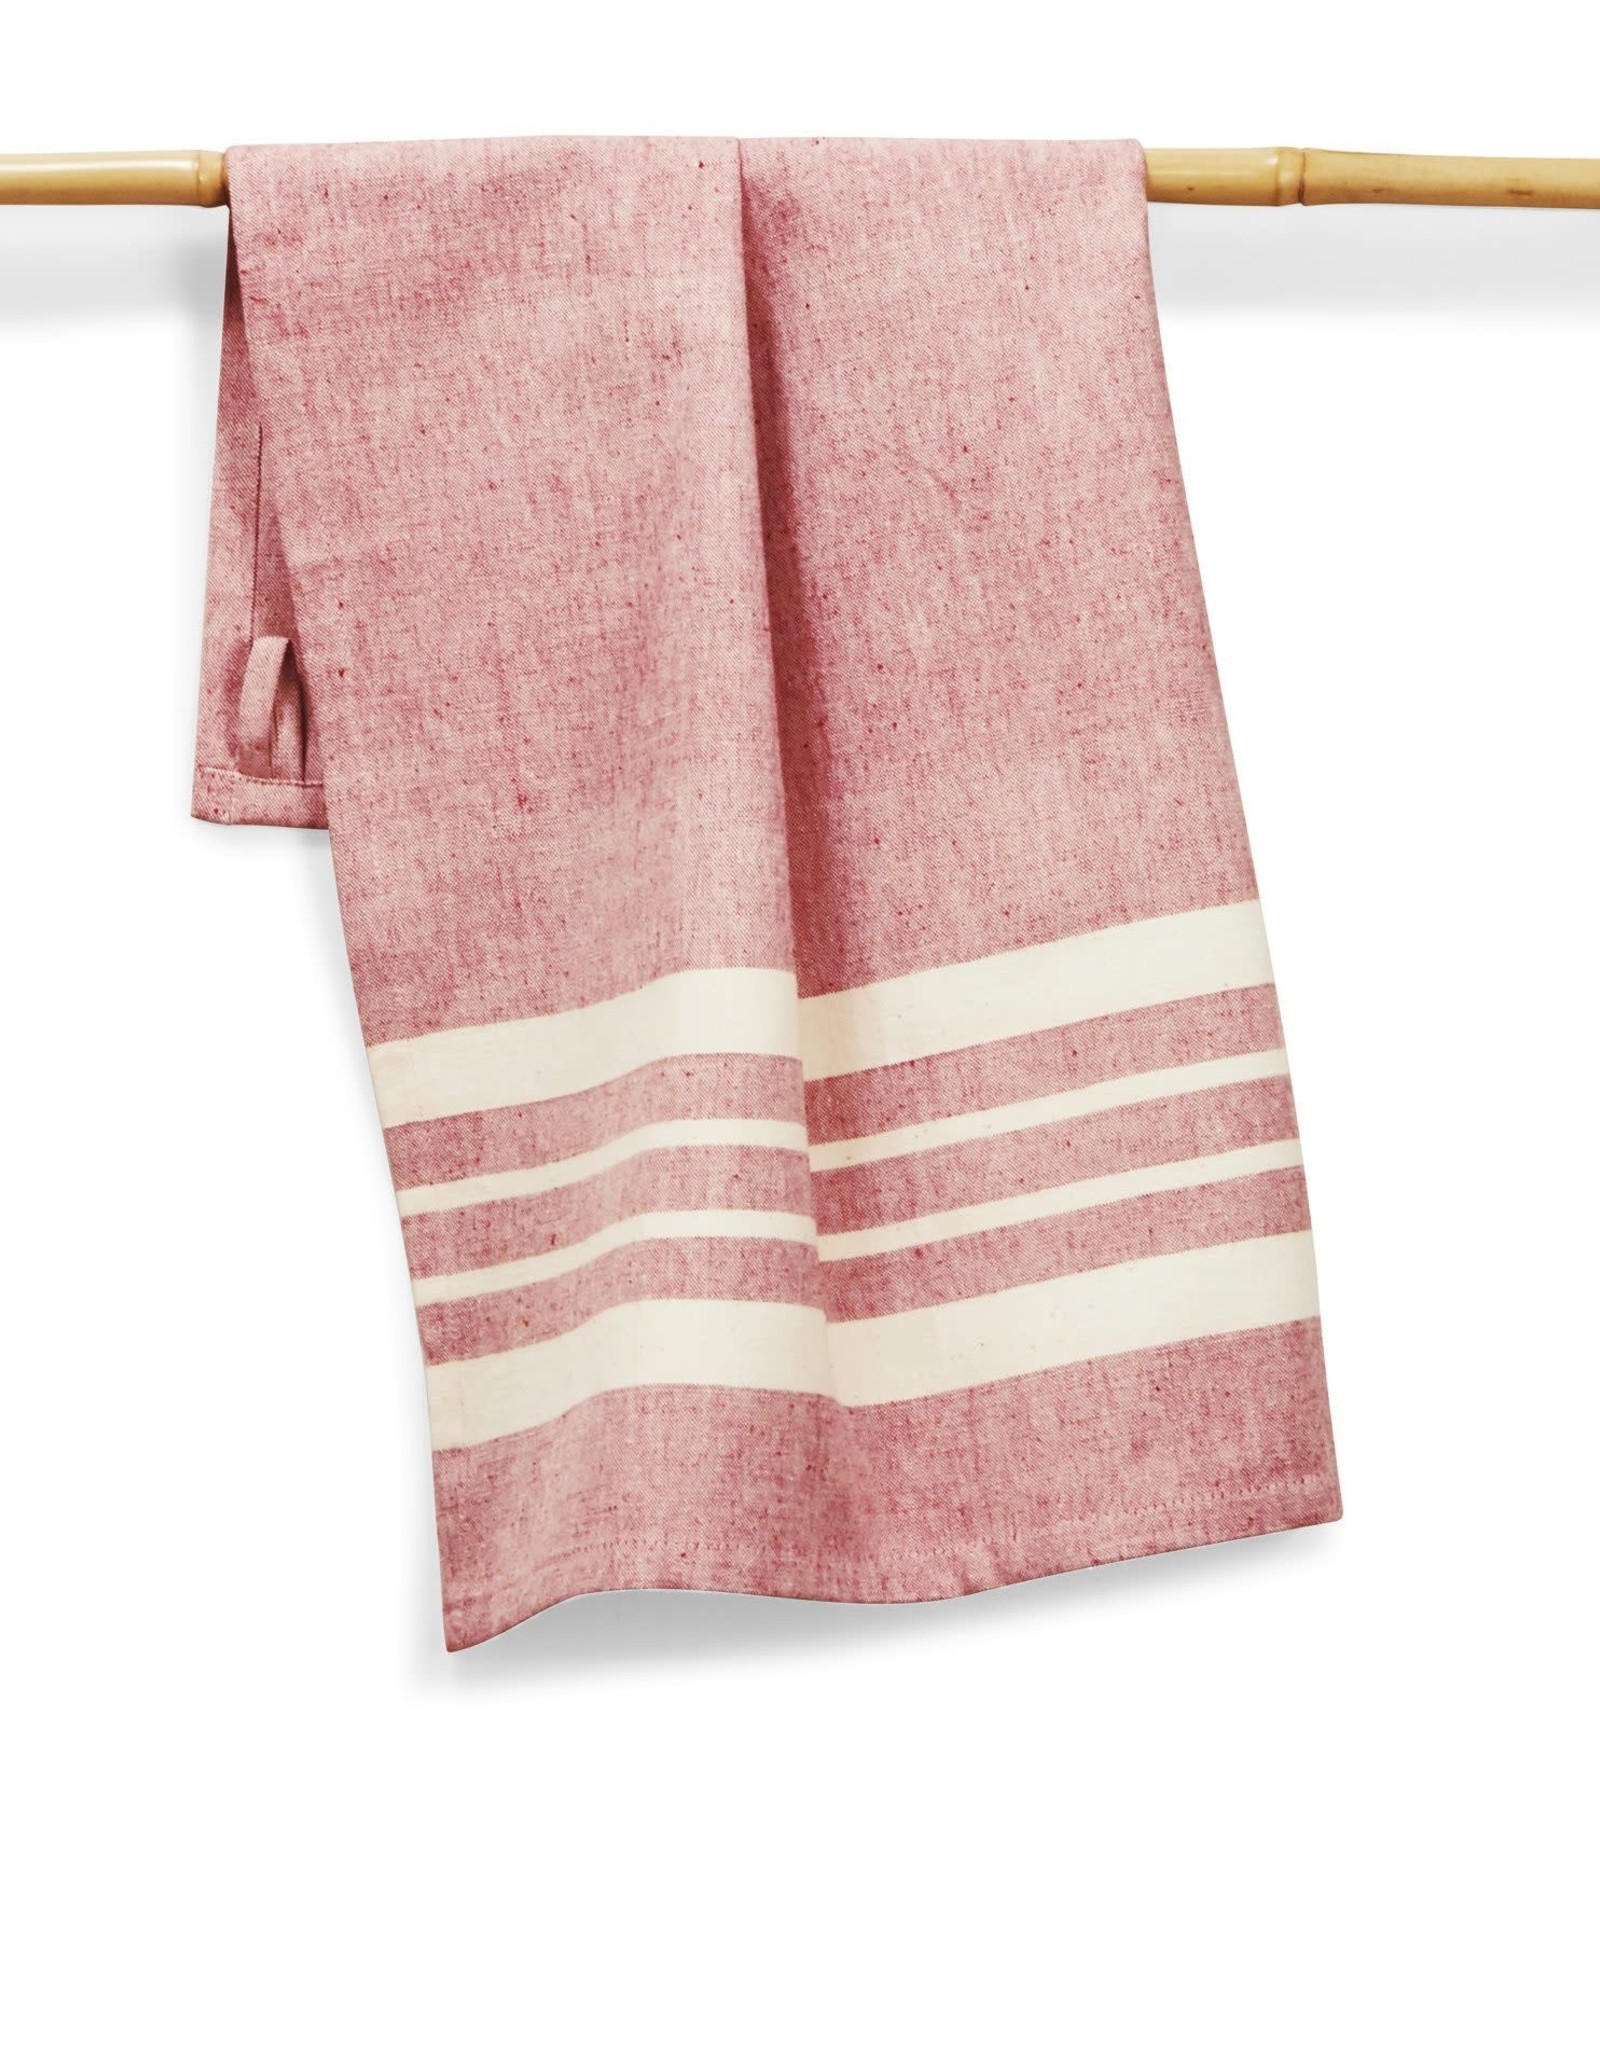 India, 27 x 19 Cotton Handwoven Kitchen Towels Tomato